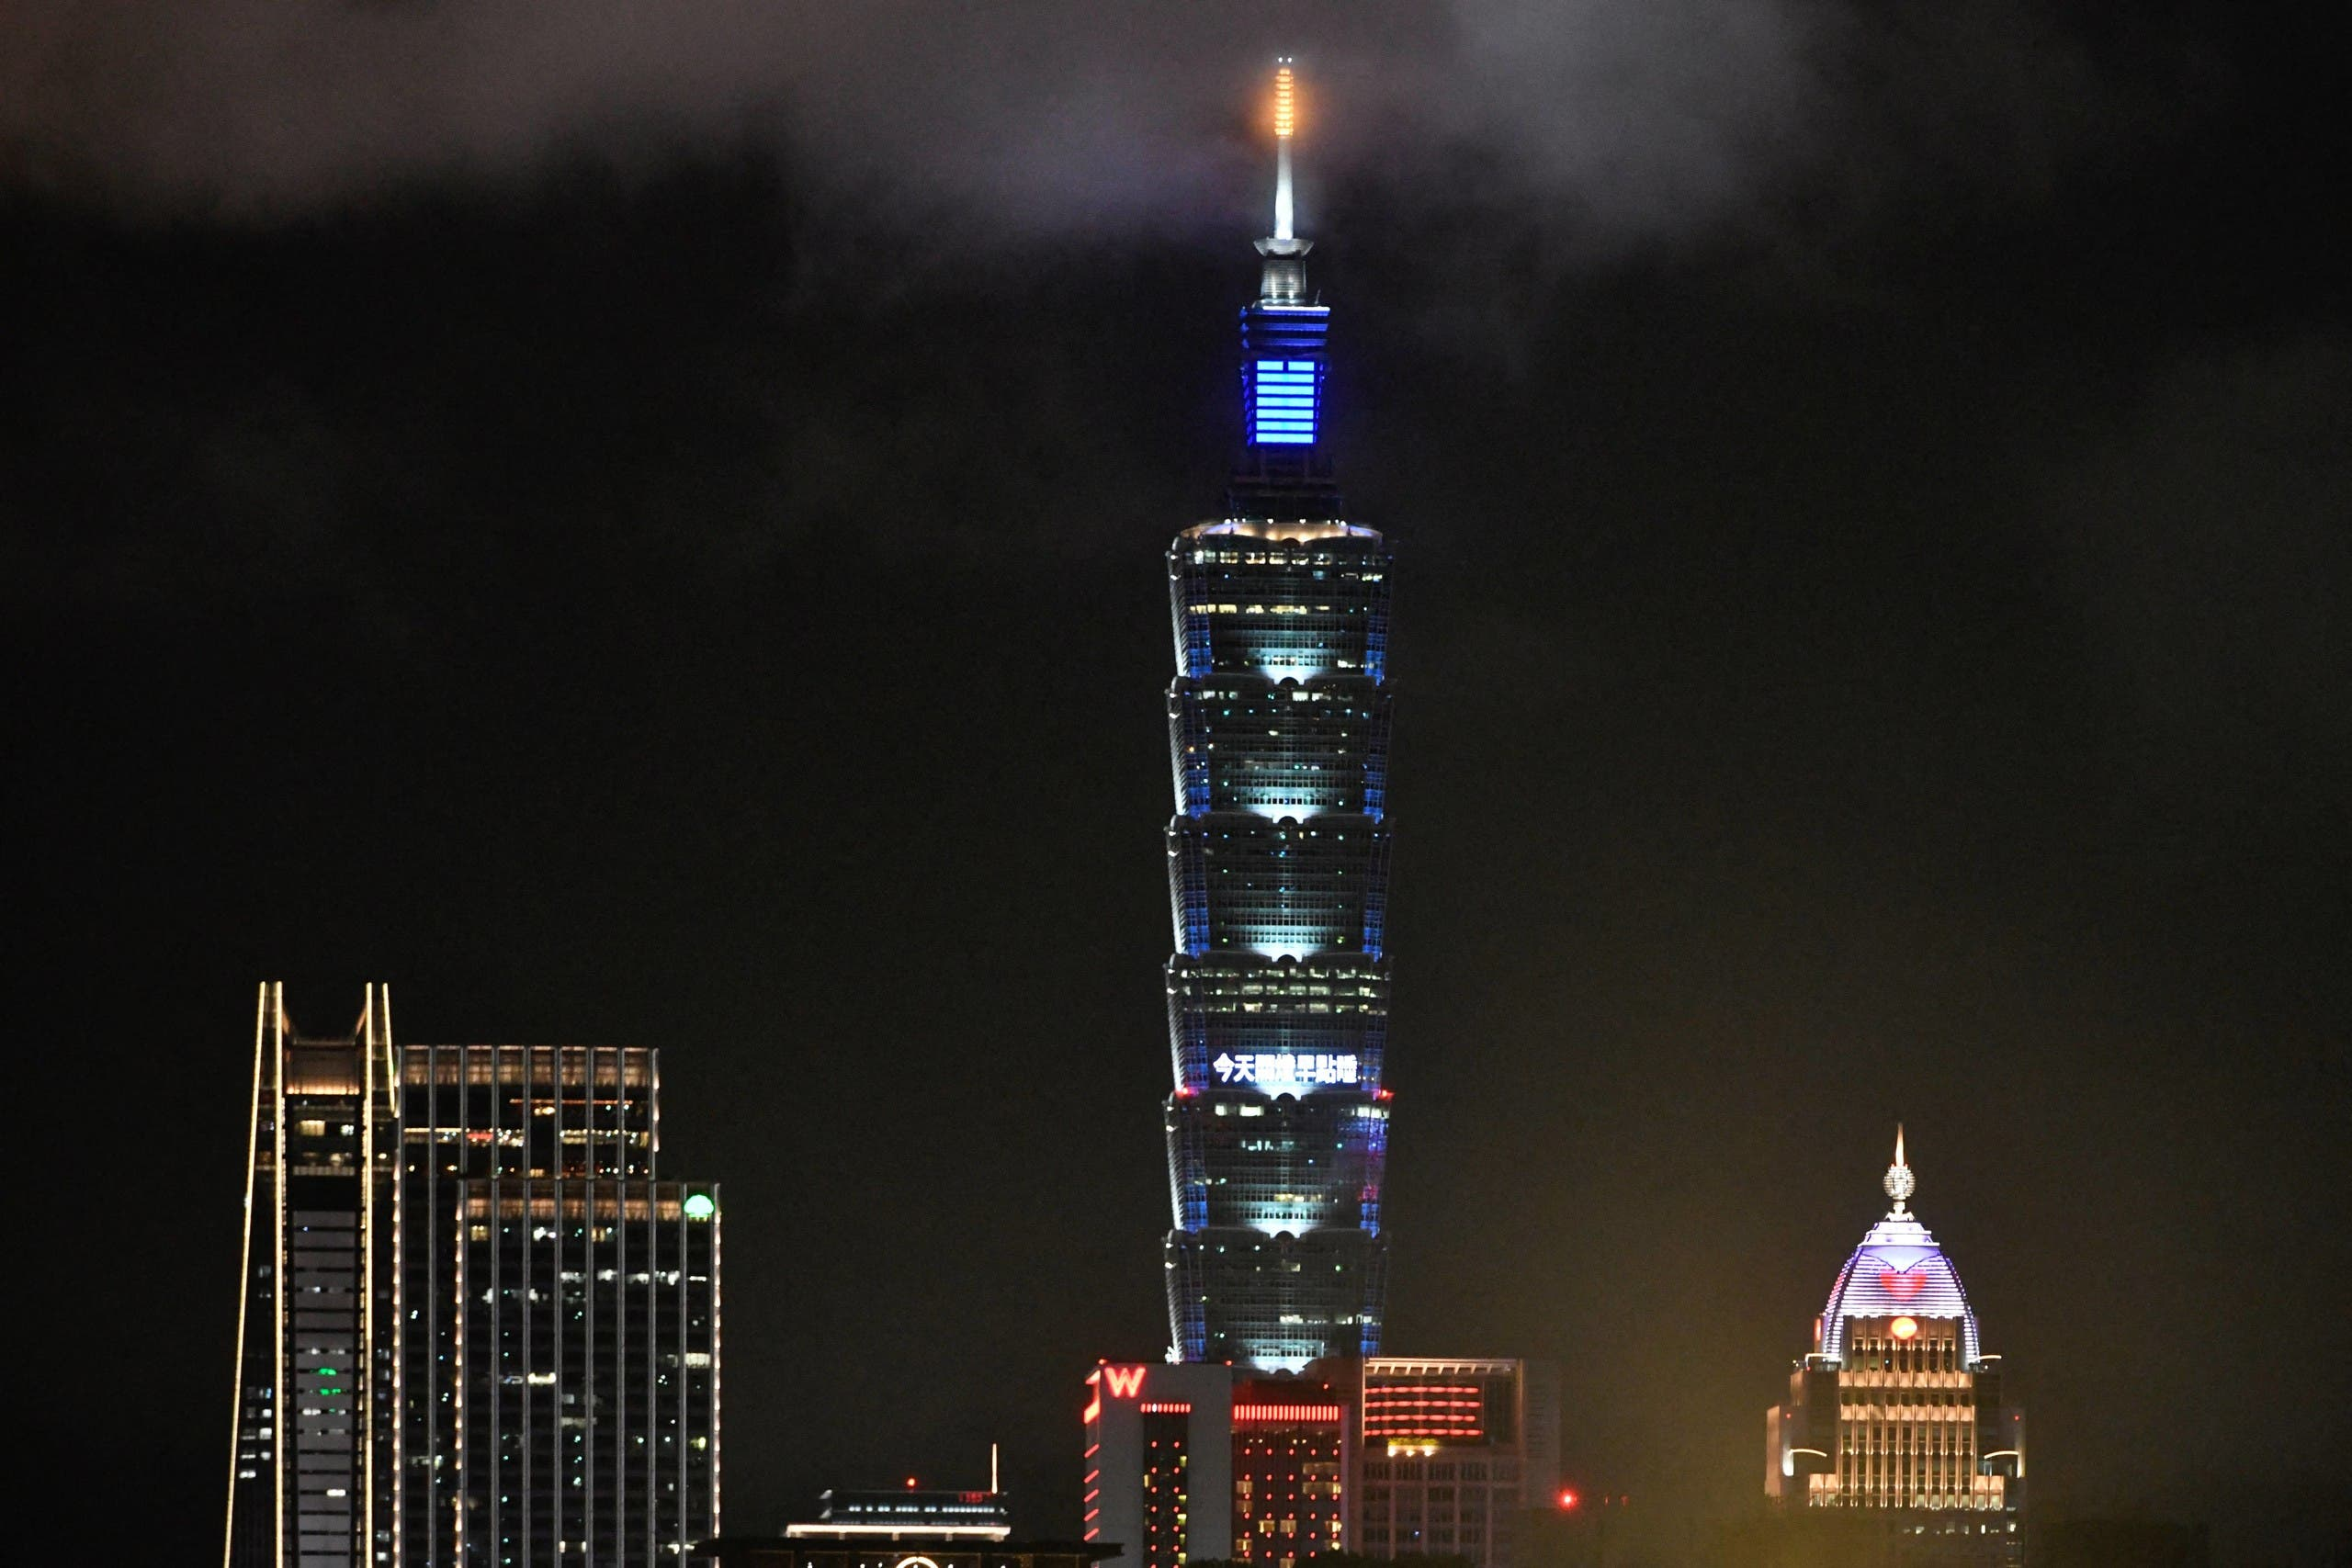 """A general view shows Taipei 101, a 508-meter high's commercial building, displays """" a turn off the light, go to sleep earlier today"""" in Chinese to mark Earth Hour Day on it's building on March 28, 2020. (AFP)"""